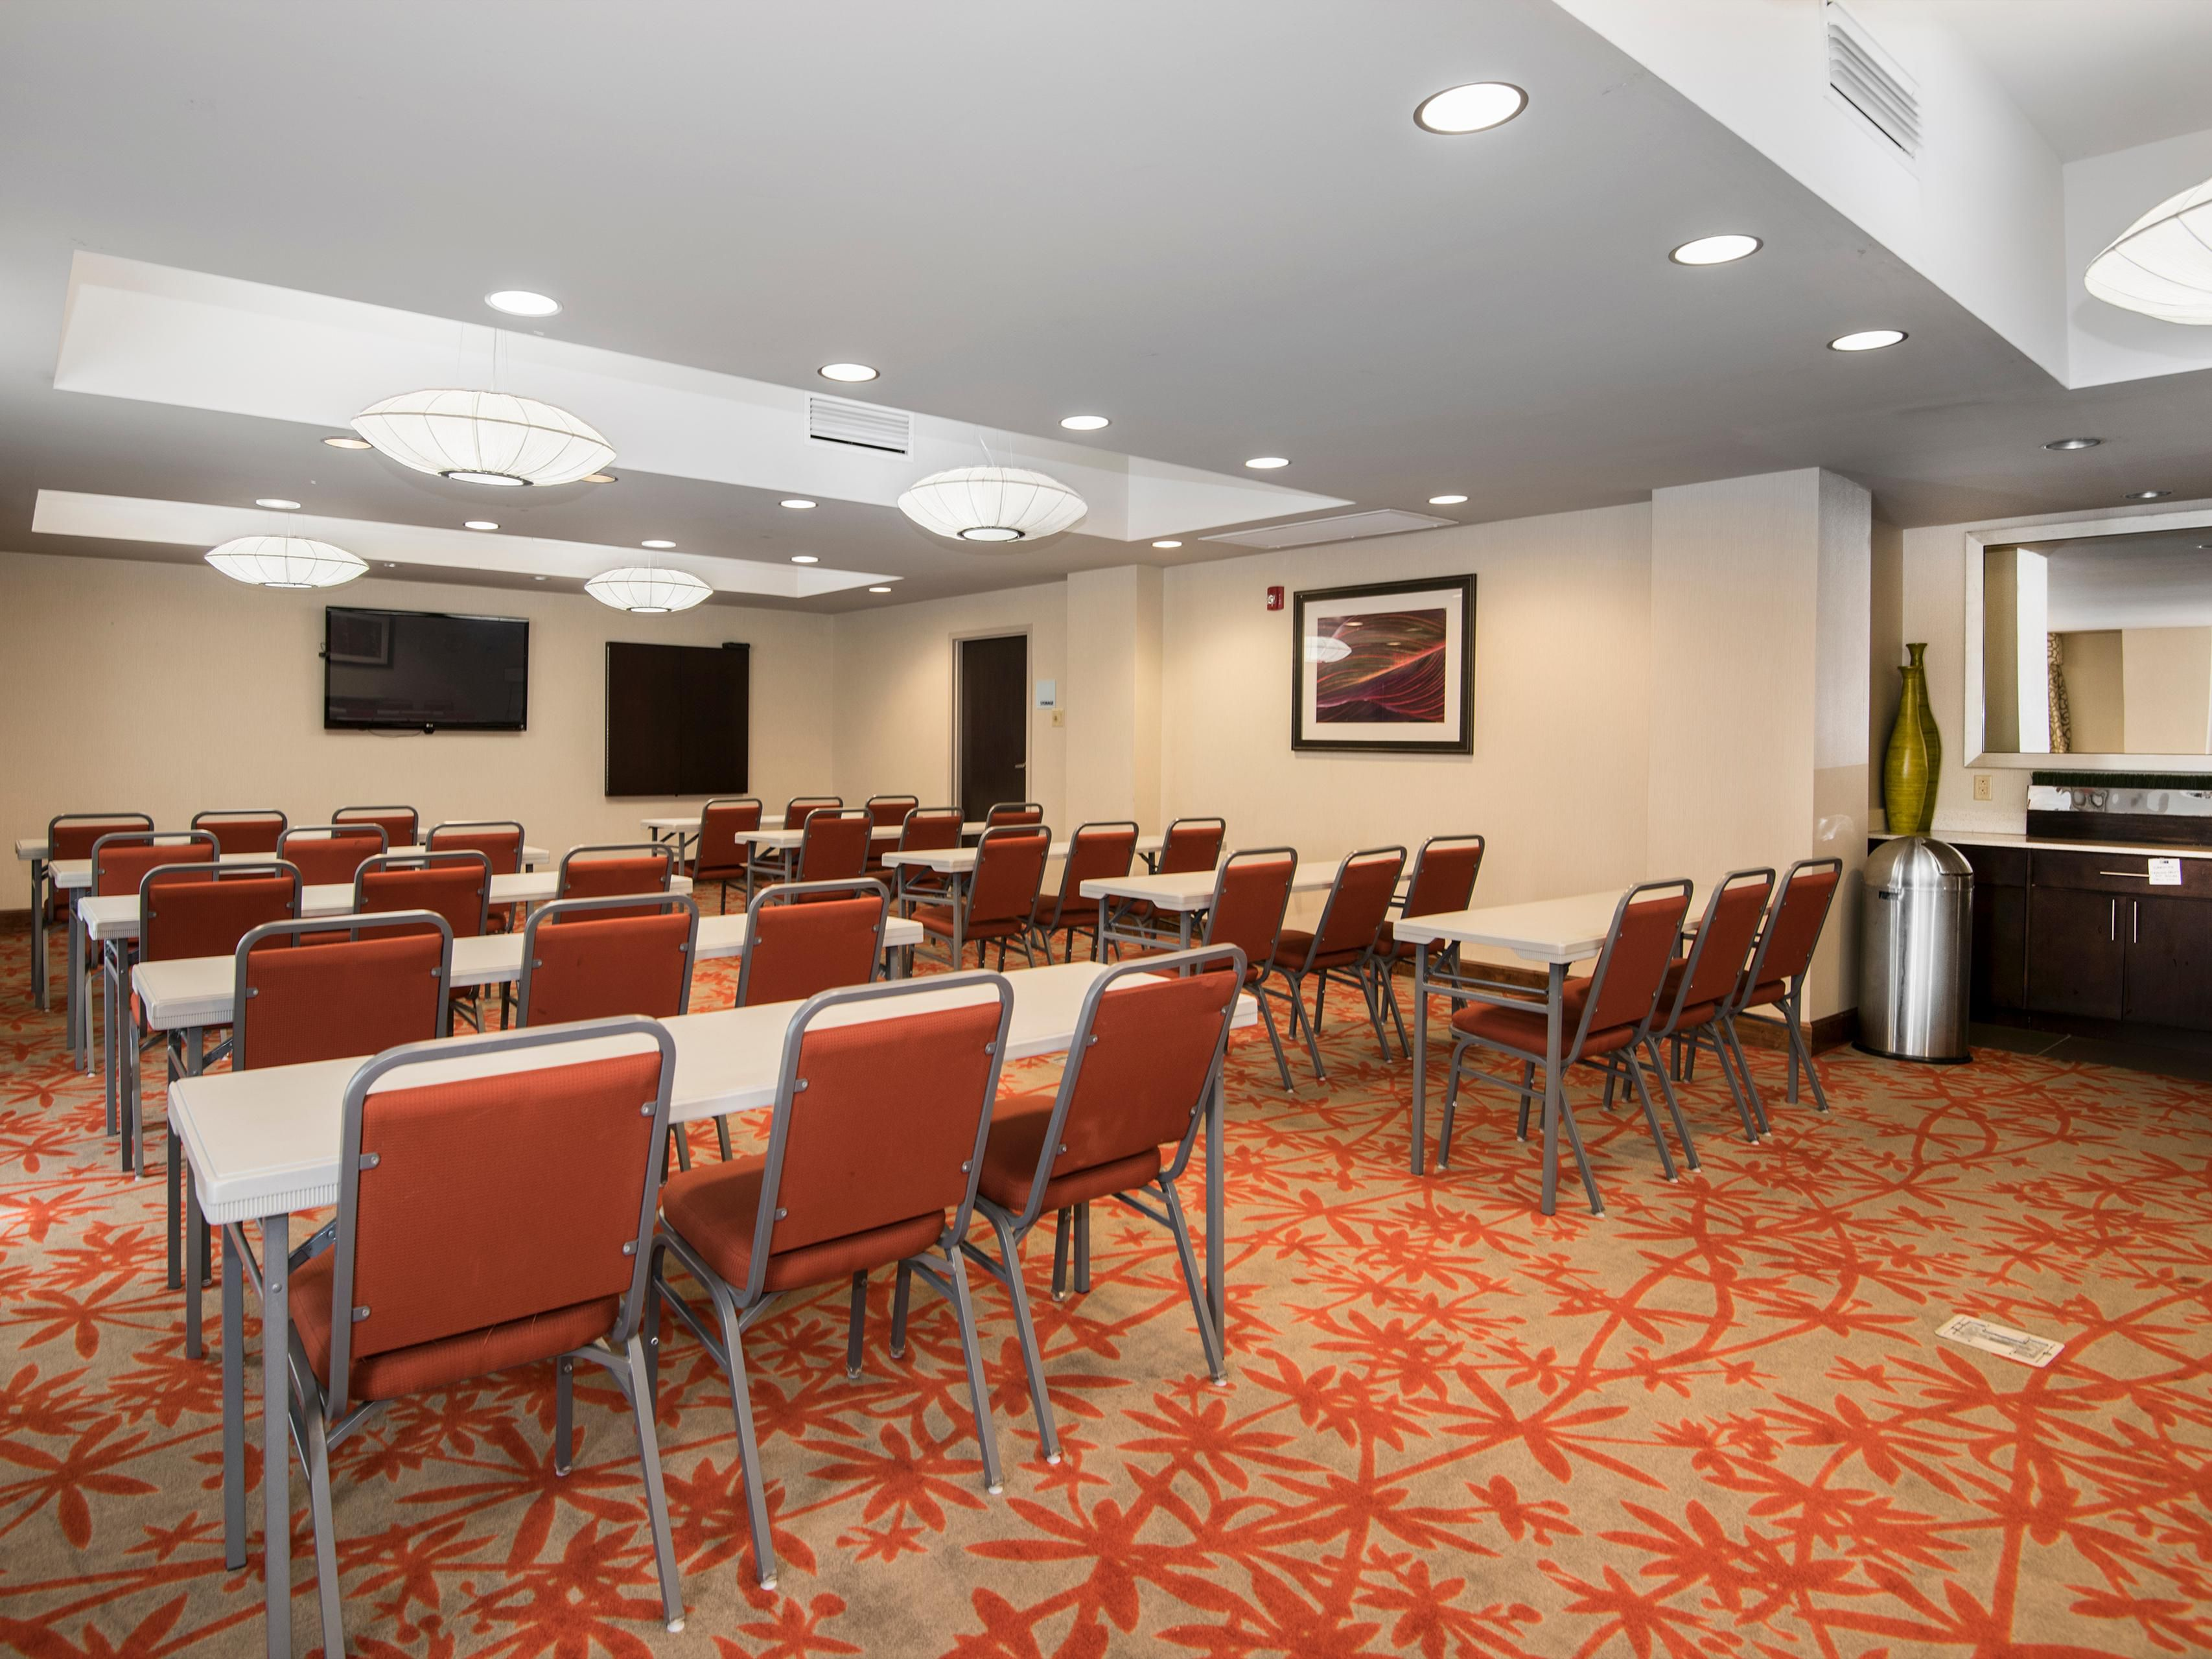 Meeting room seats up to 40 ppl